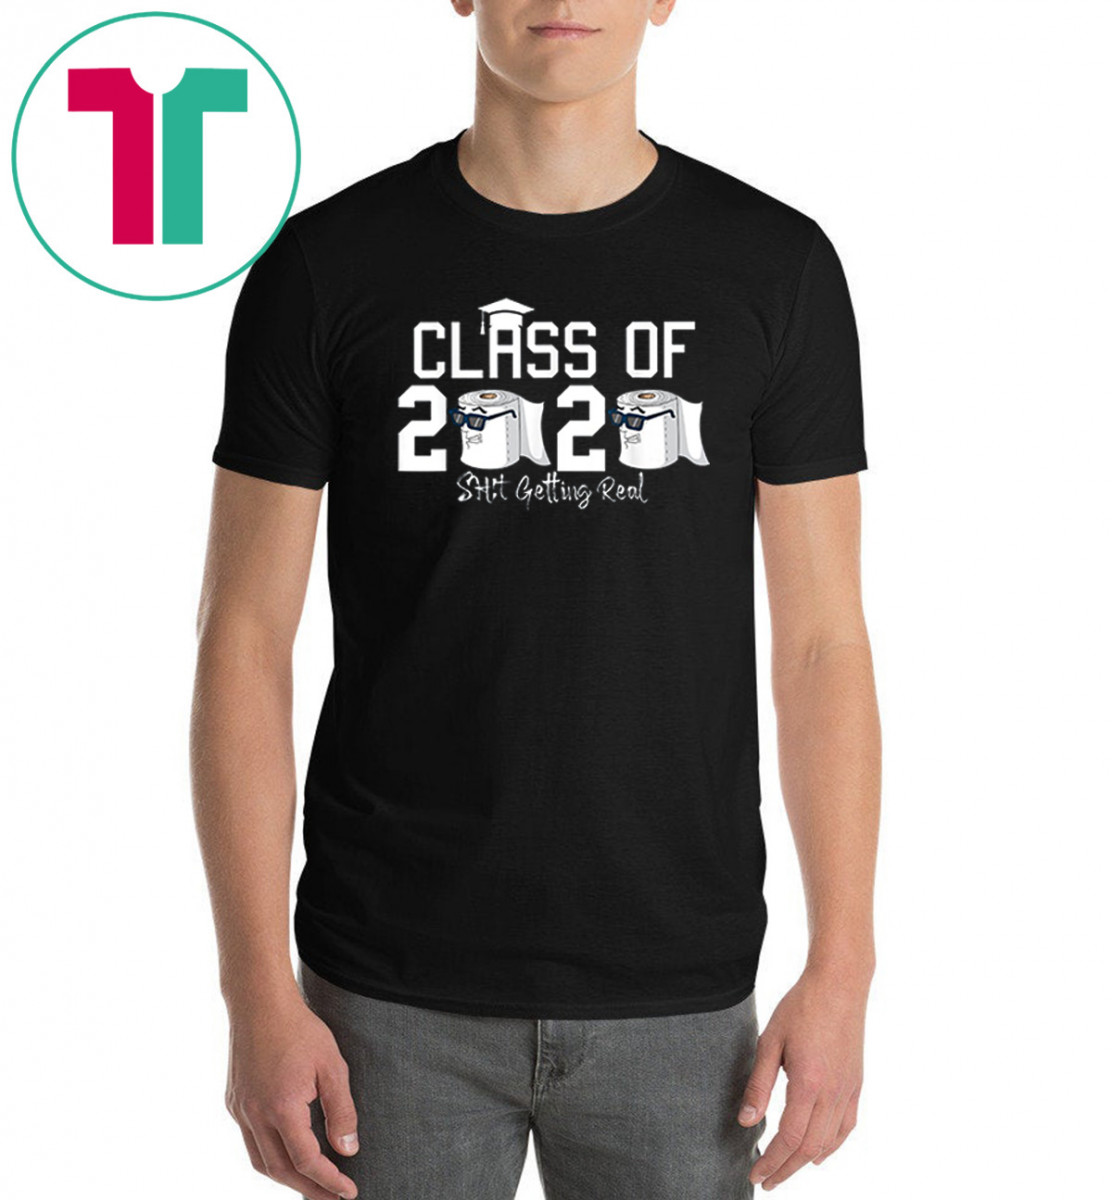 Funny Class of 2020 Shit Getting Real Graduation Gift Shirt